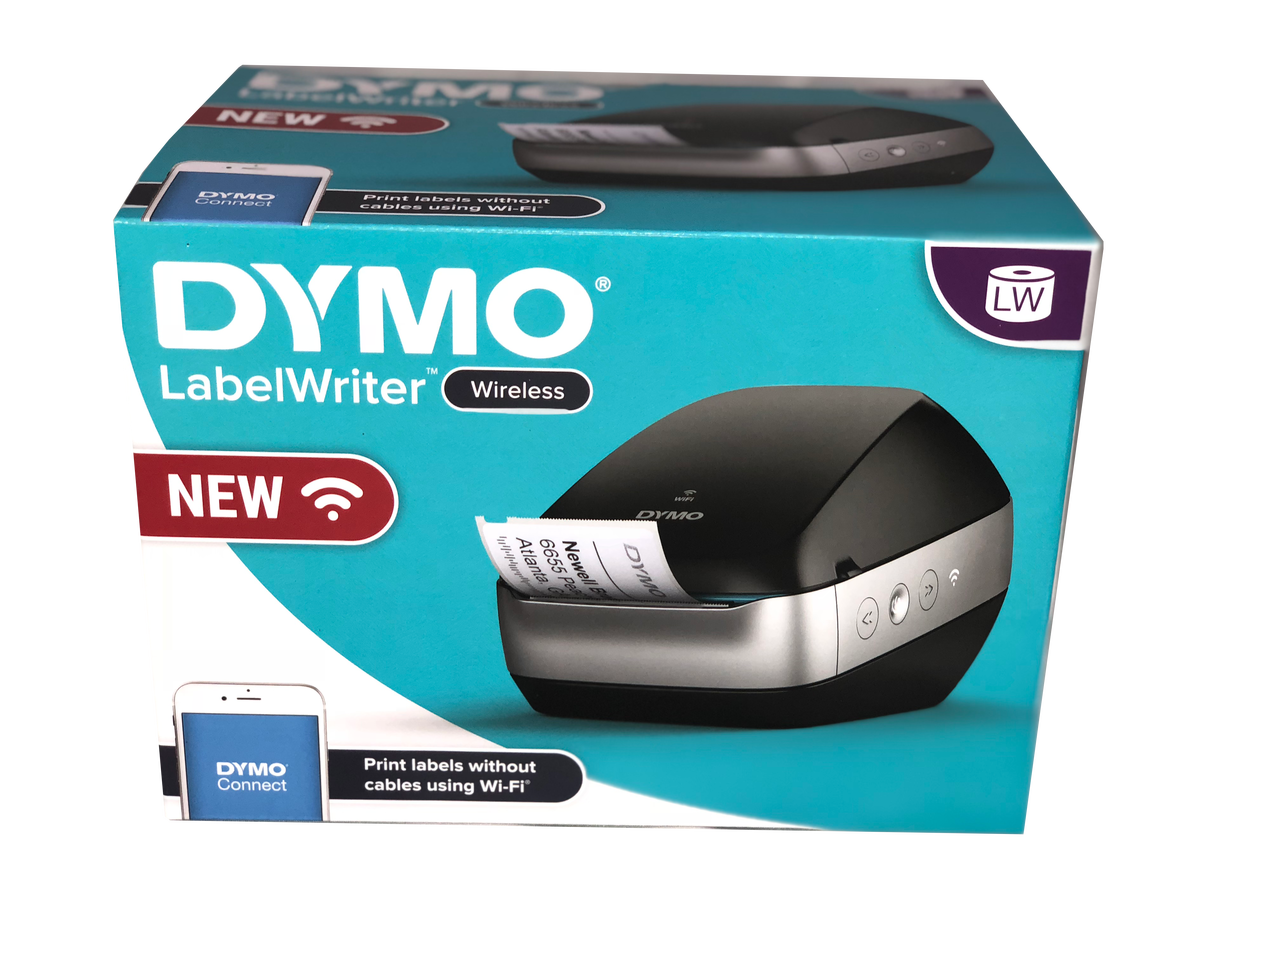 DYMO #2008209 LABELWRITER WIRELESS LABELLER PRINTER IN BLACK